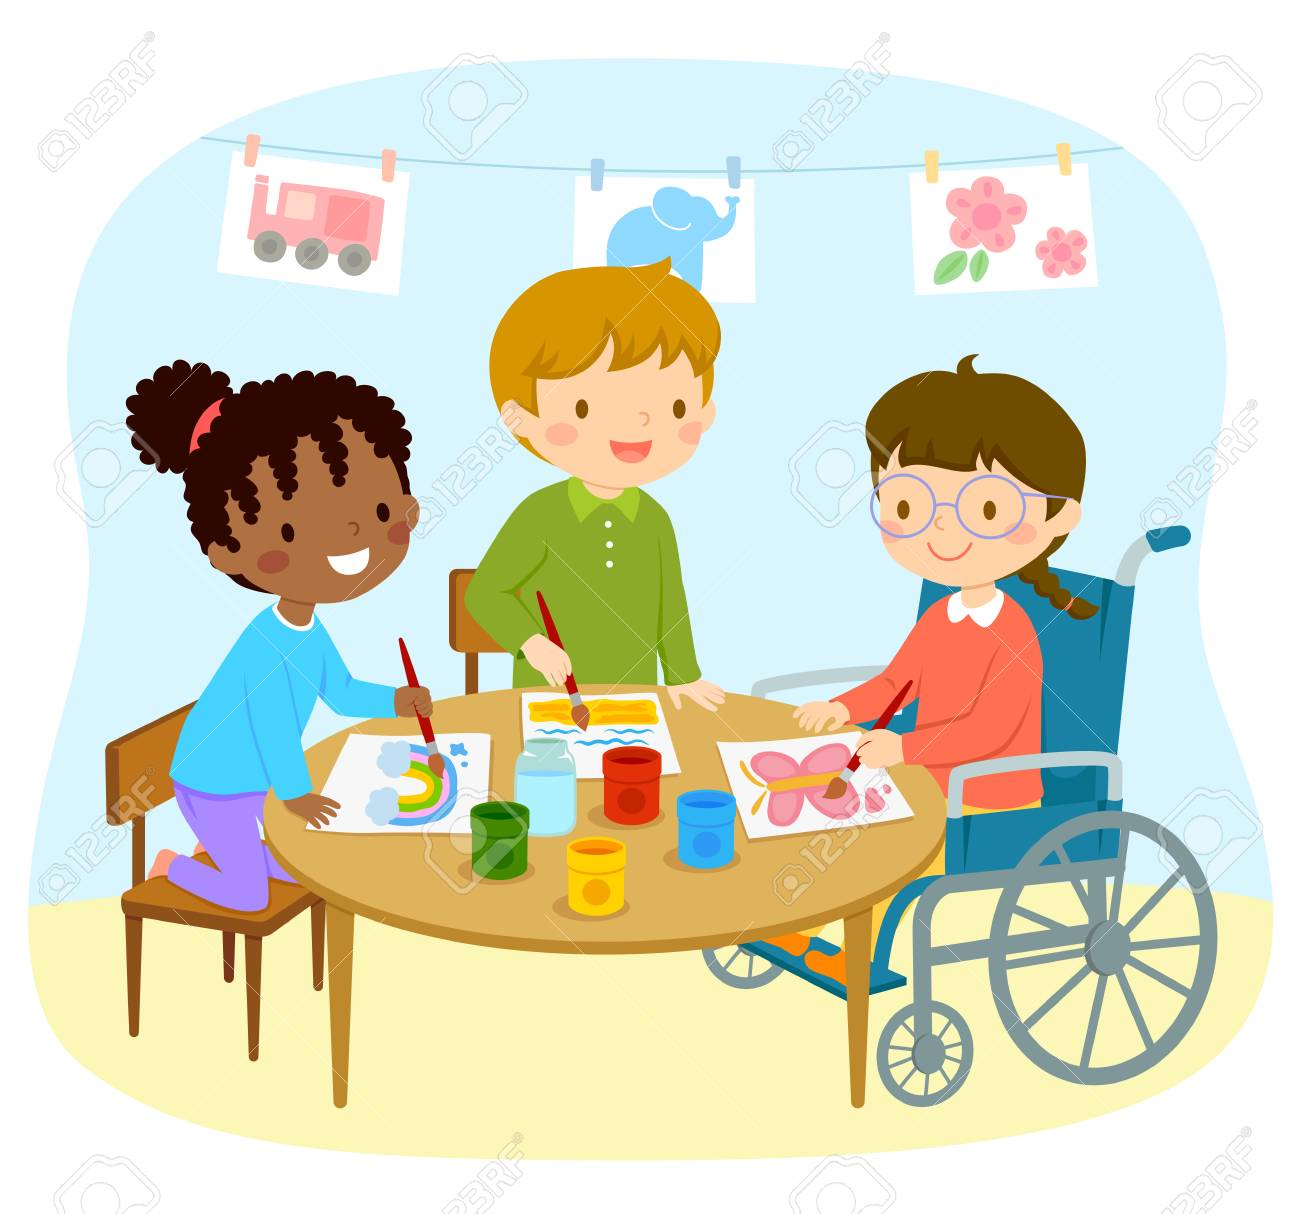 Disabled girl in a wheelchair drawing with her friends in the kindergarten - 118909474